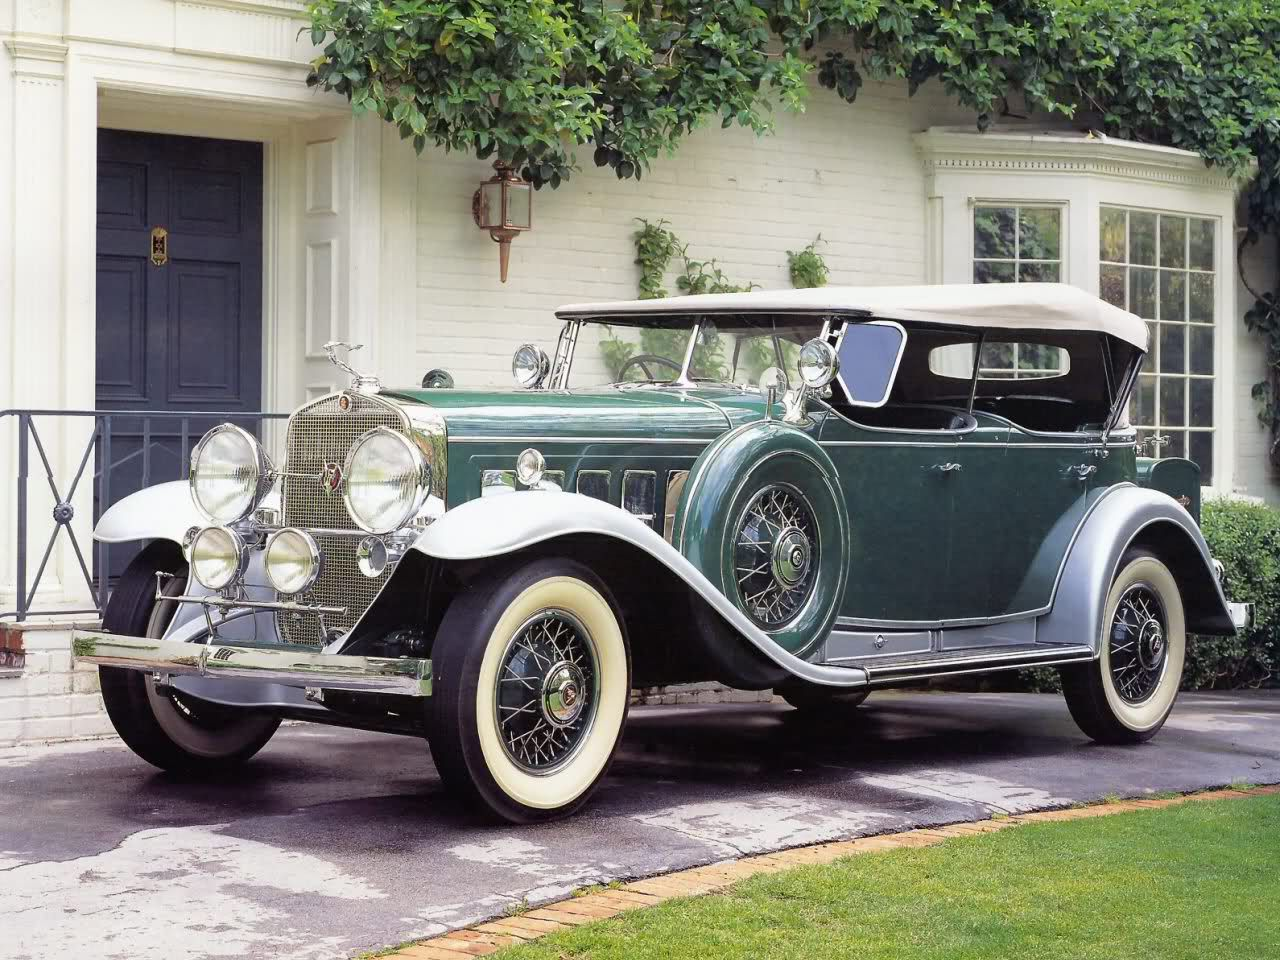 luxury cars of the 1930s | Cars | Pinterest | Luxury cars ...